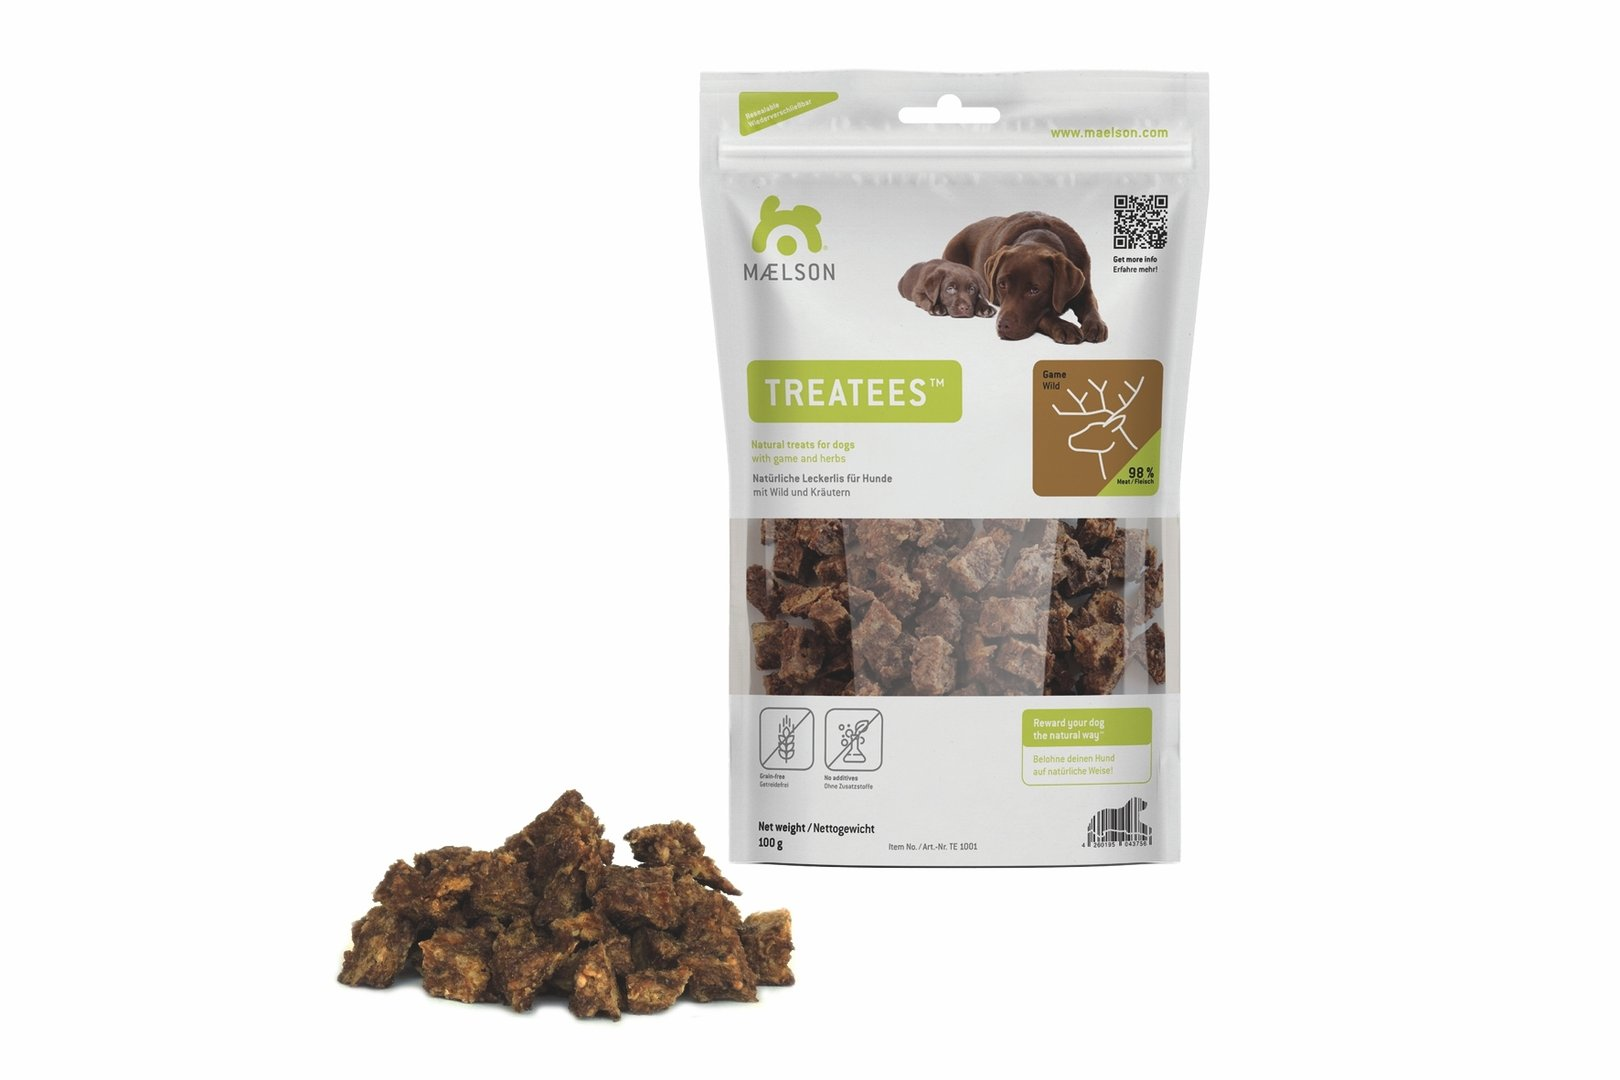 Treatees™ 100 Wild, 100g